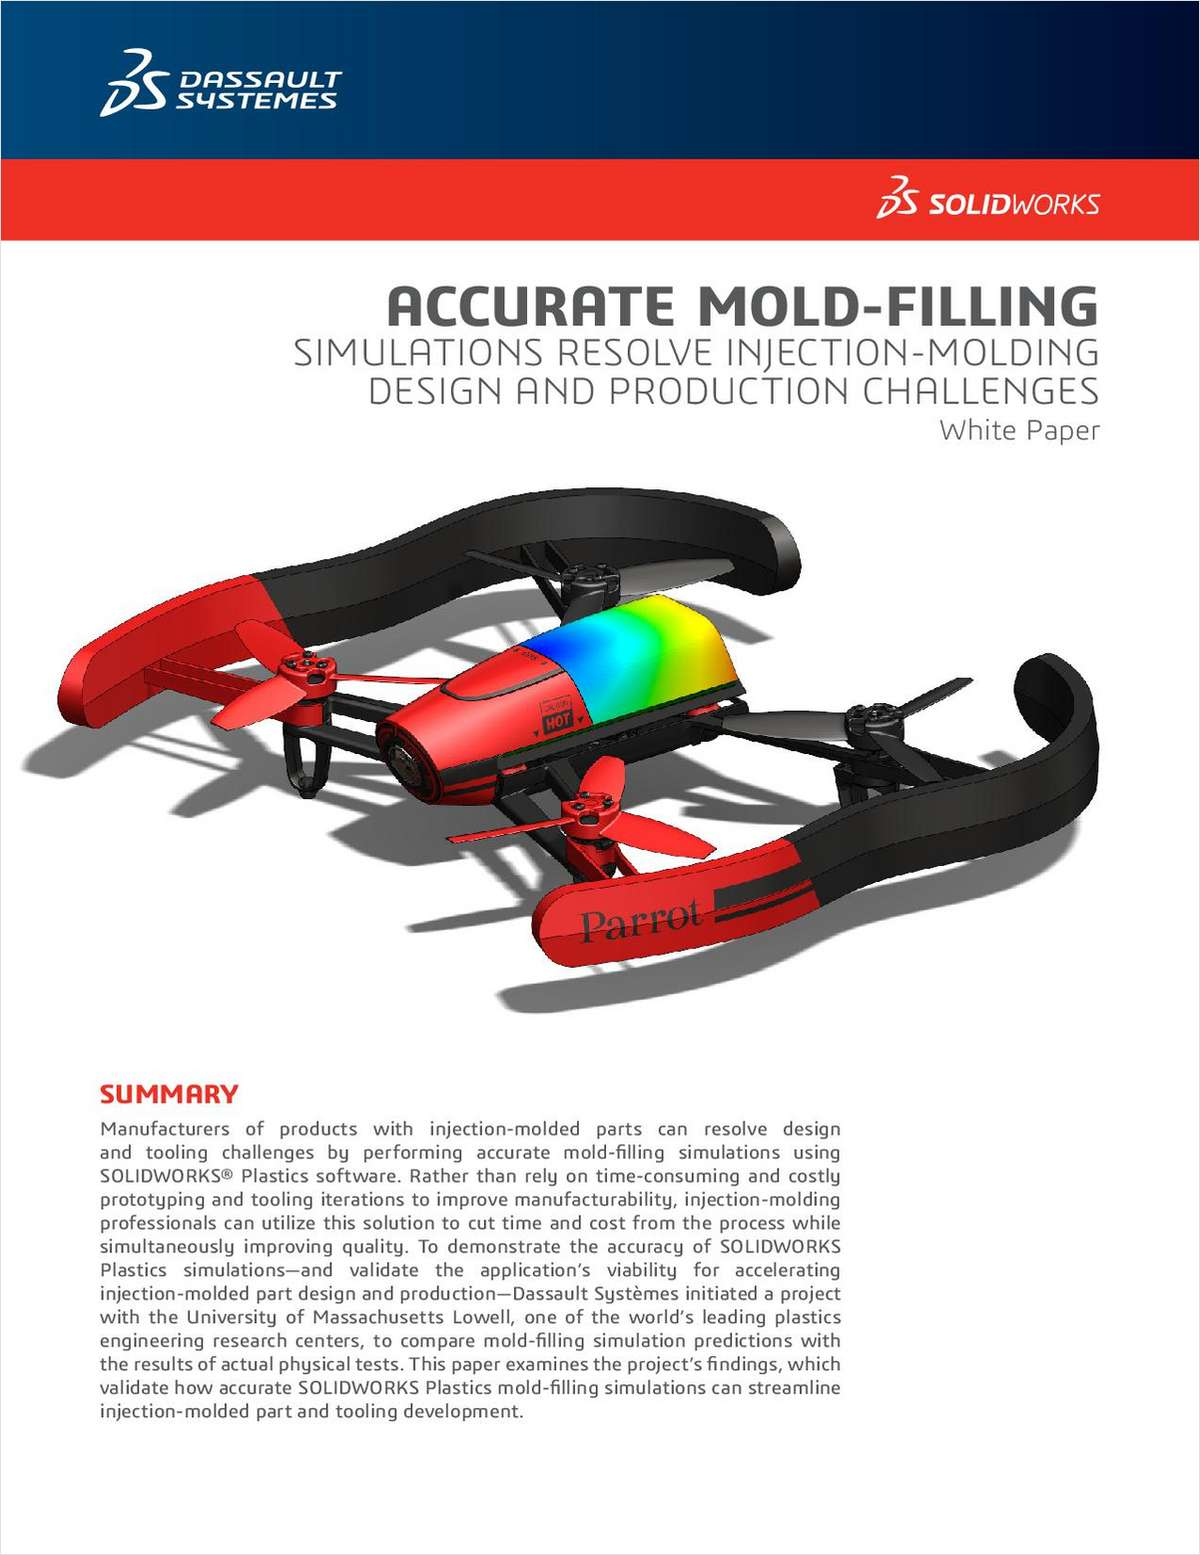 SOLIDWORKS® Resolves Injection-Molding Challenges